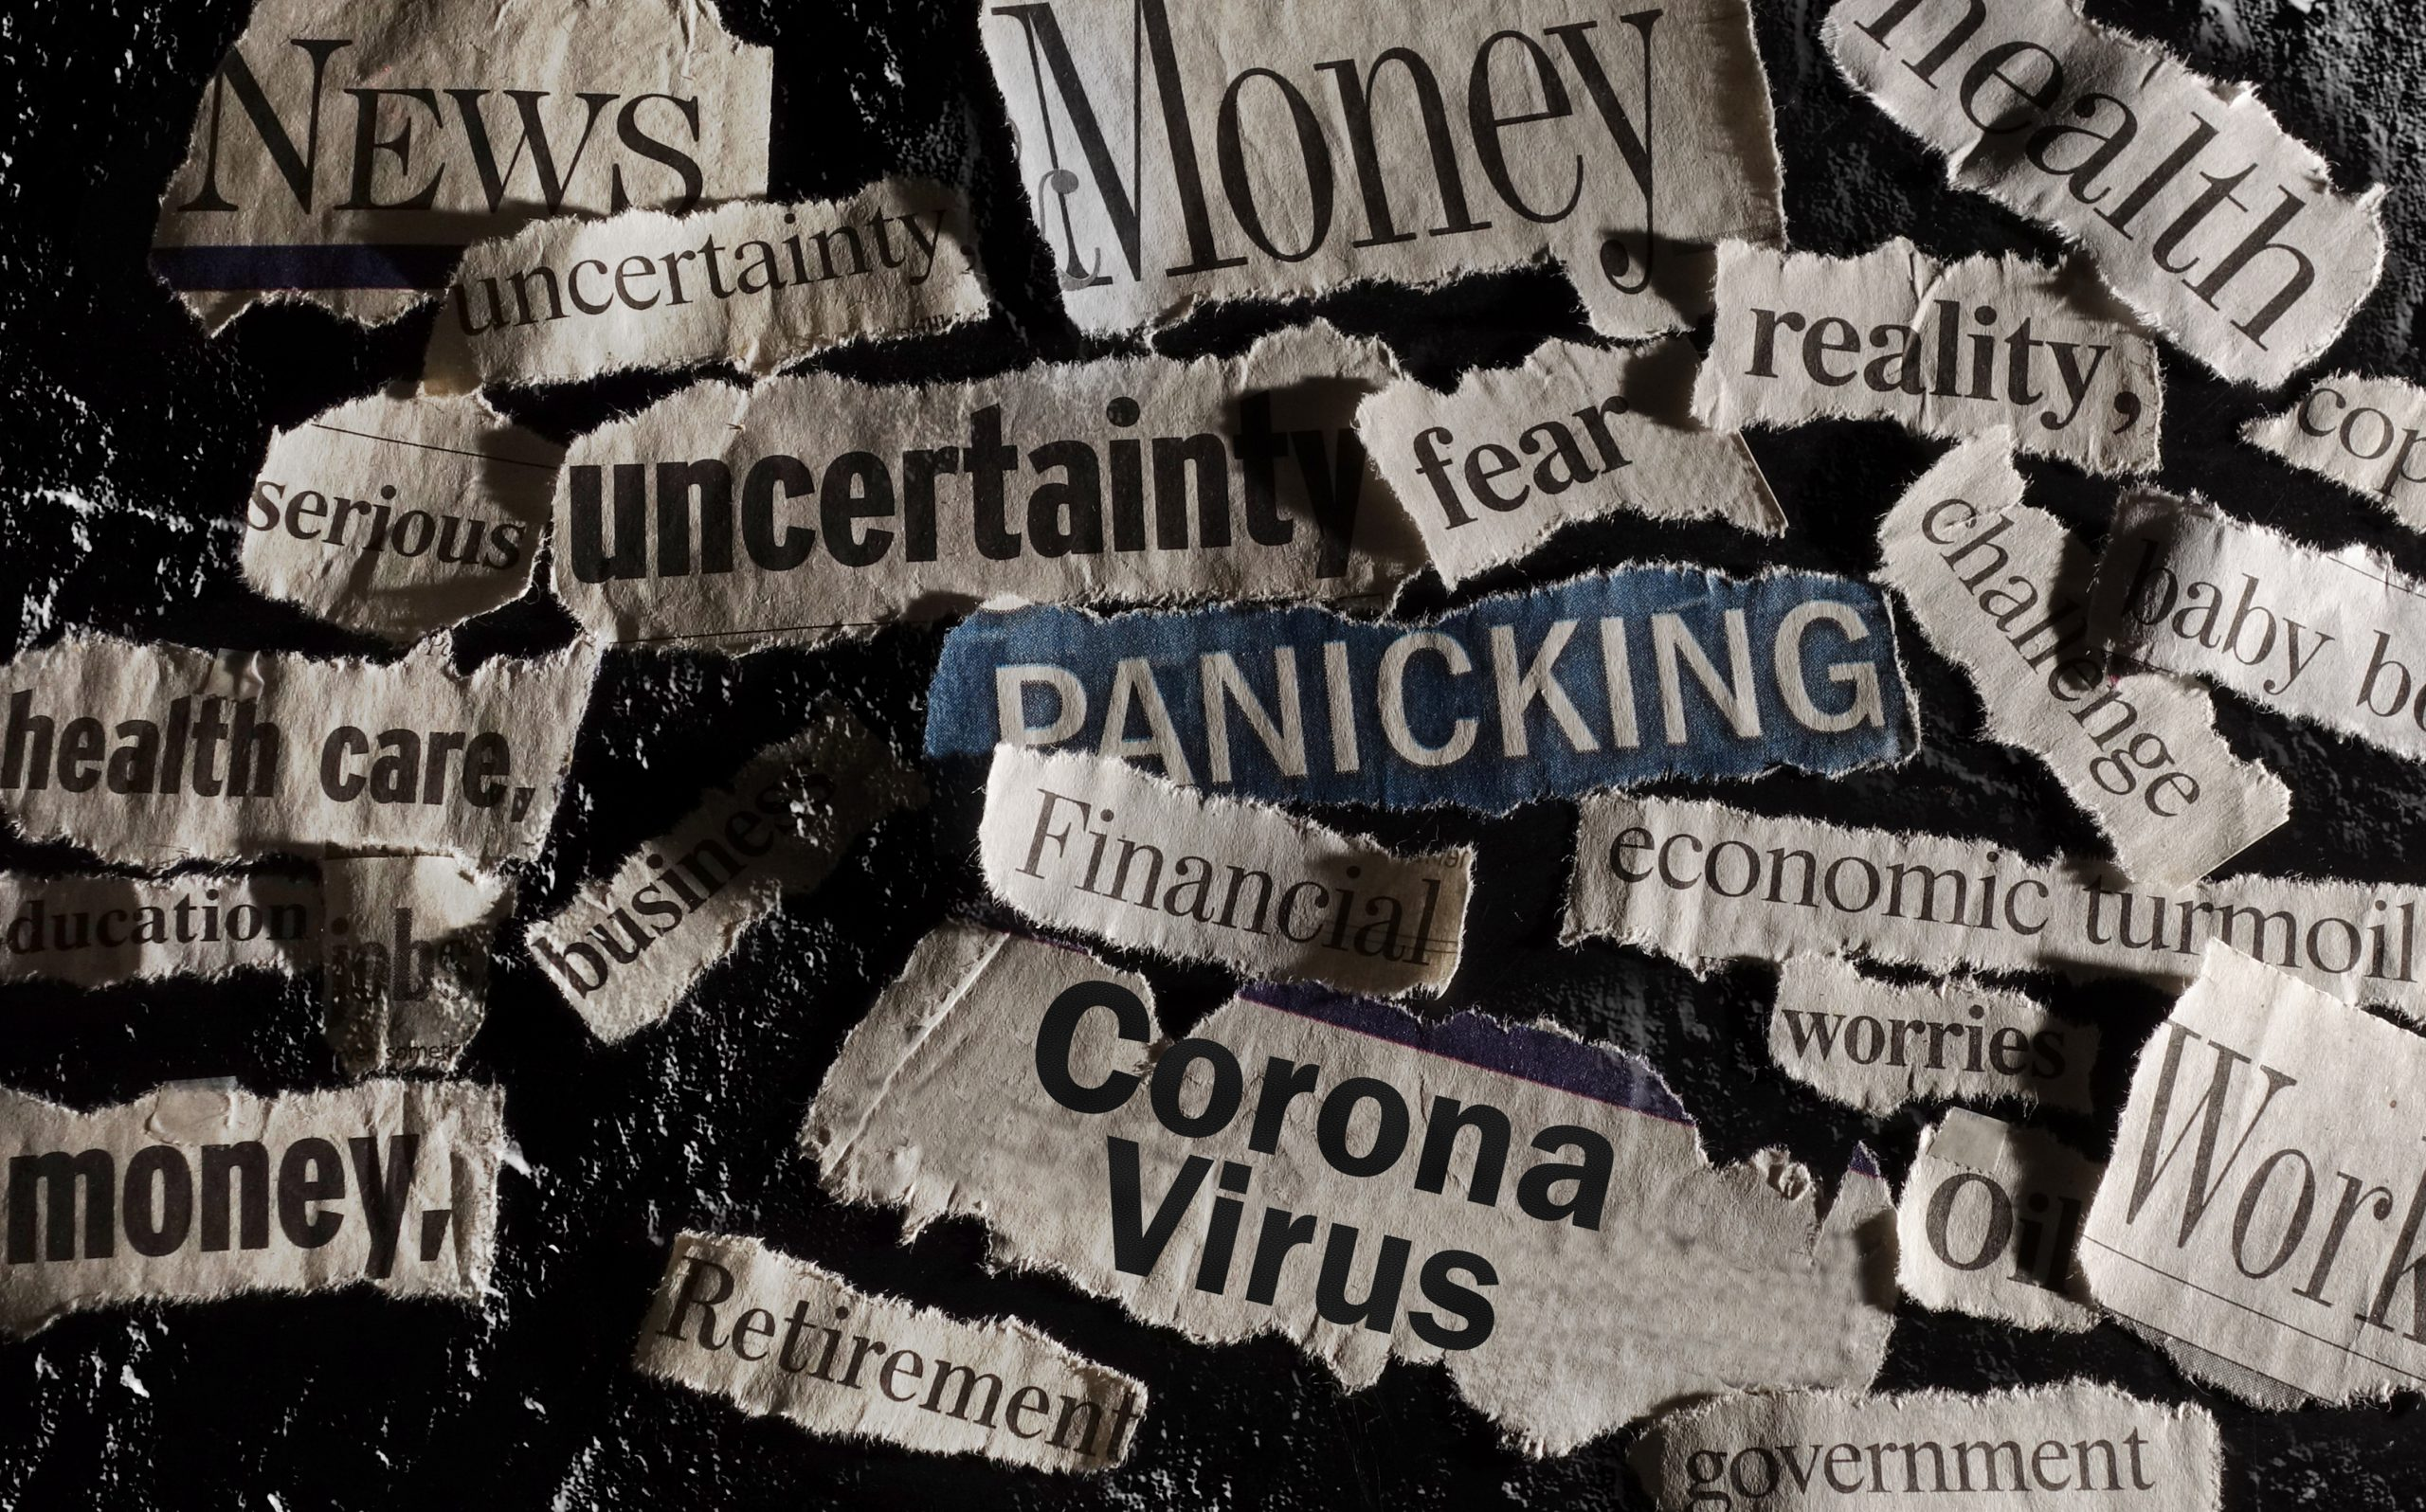 Various newspaper headlines with words depicting worry and uncertainty